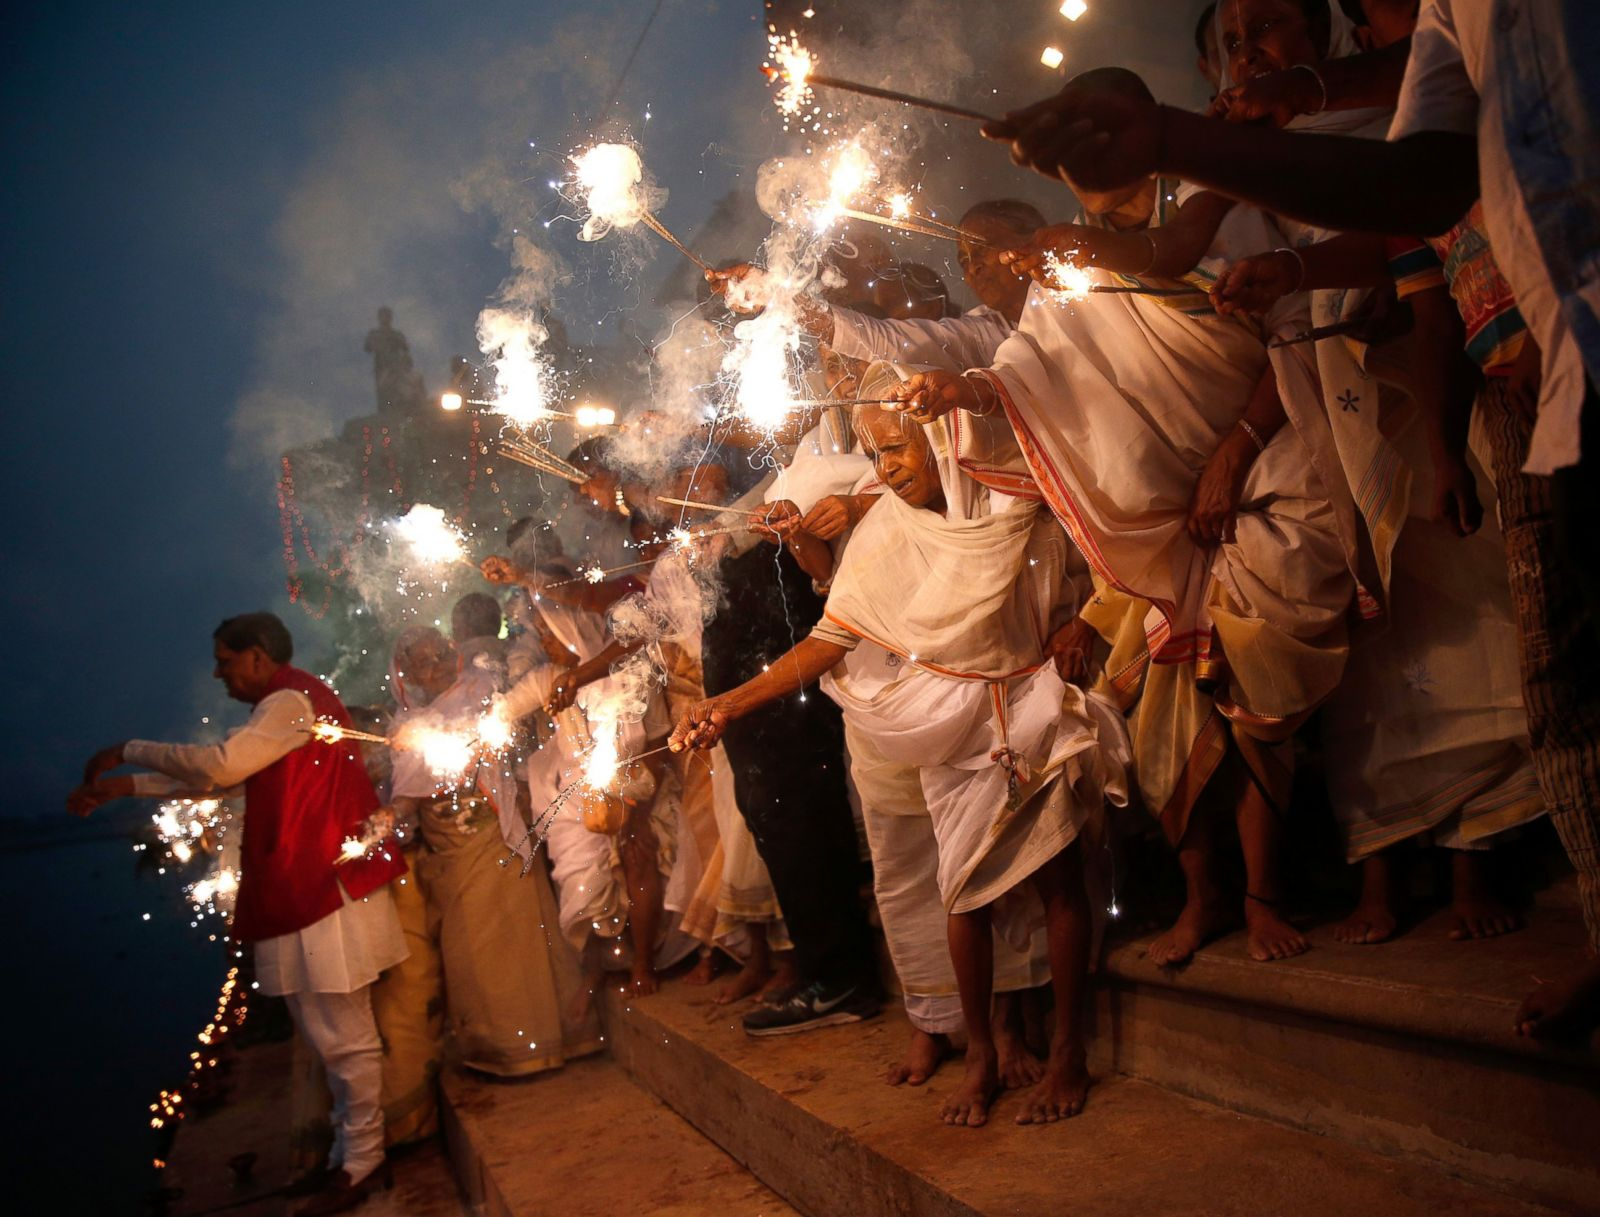 essay on celebration of indian festivals India: festivals of india indian festivals bind all indians together of different castes,religions,etc there is no discrimination while celebration.